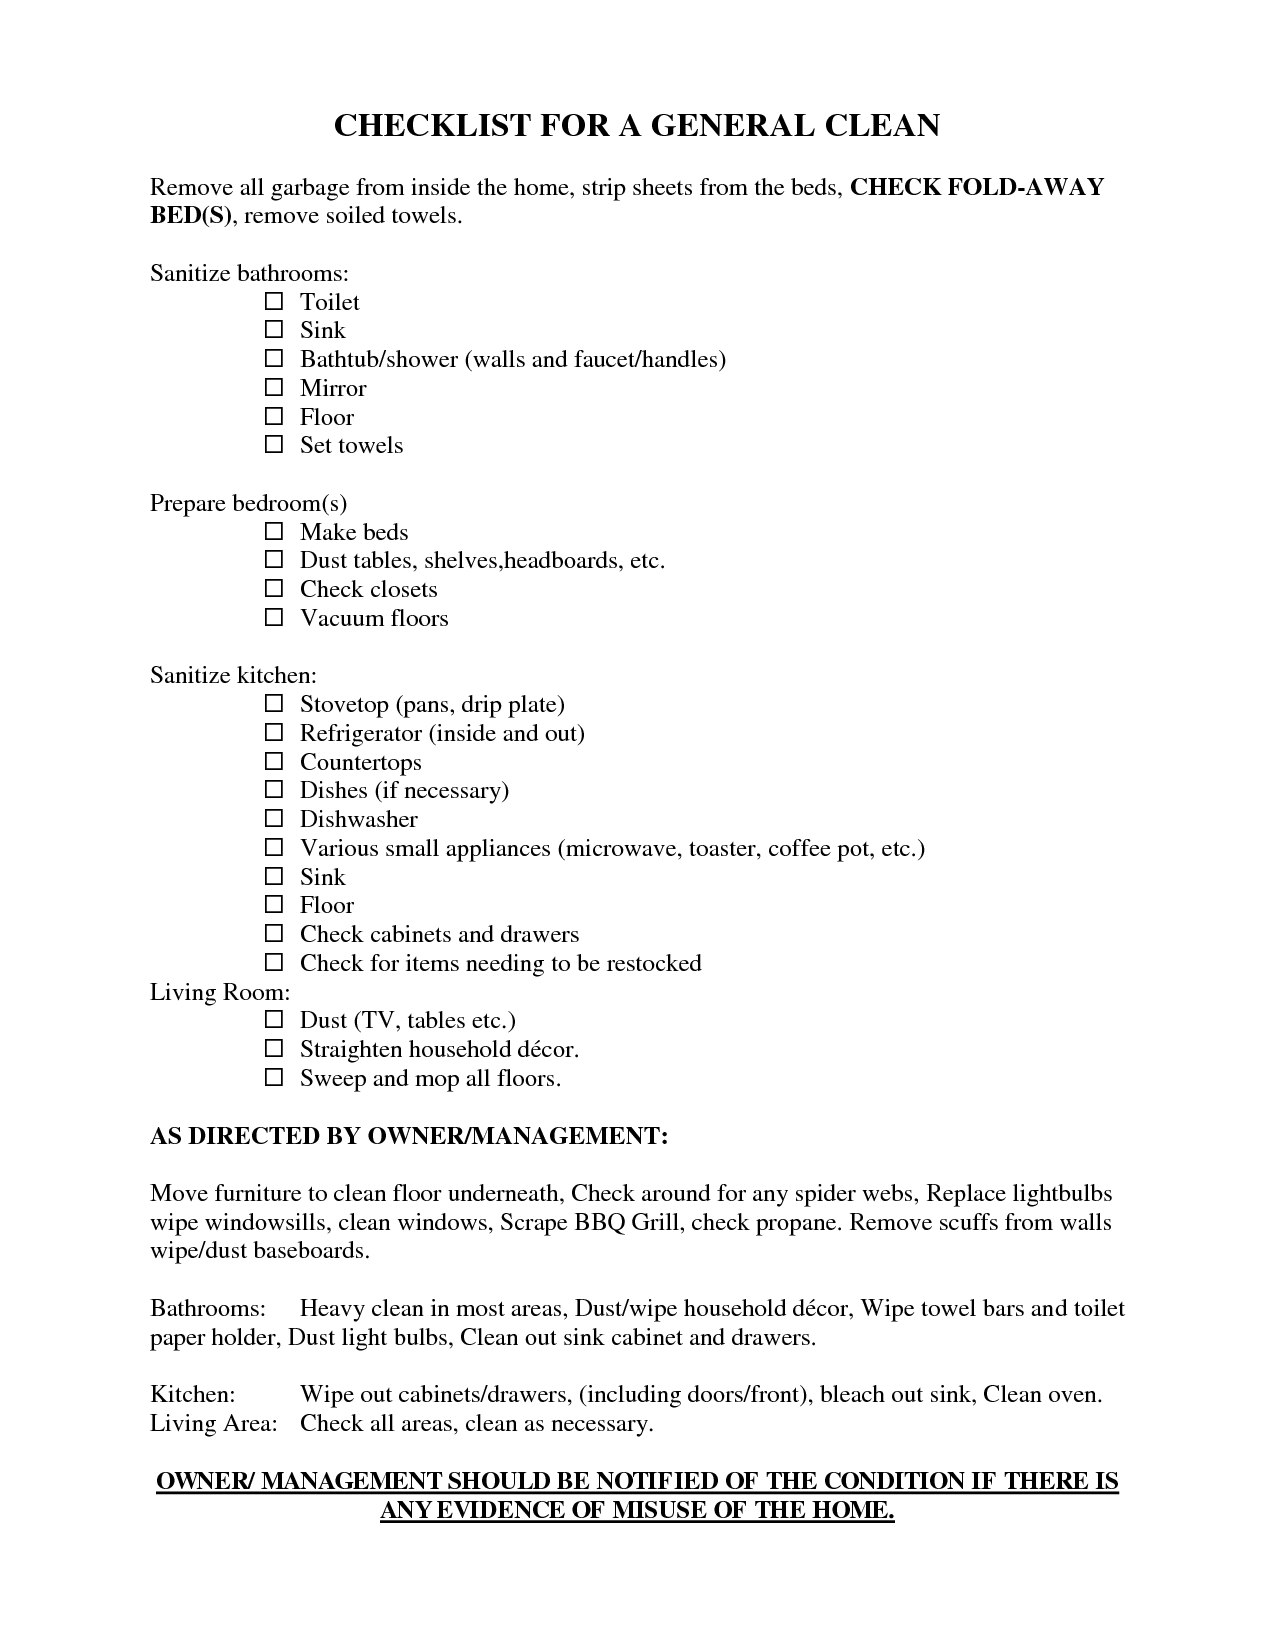 Scope Of Work Template  Housekeeping    Template And